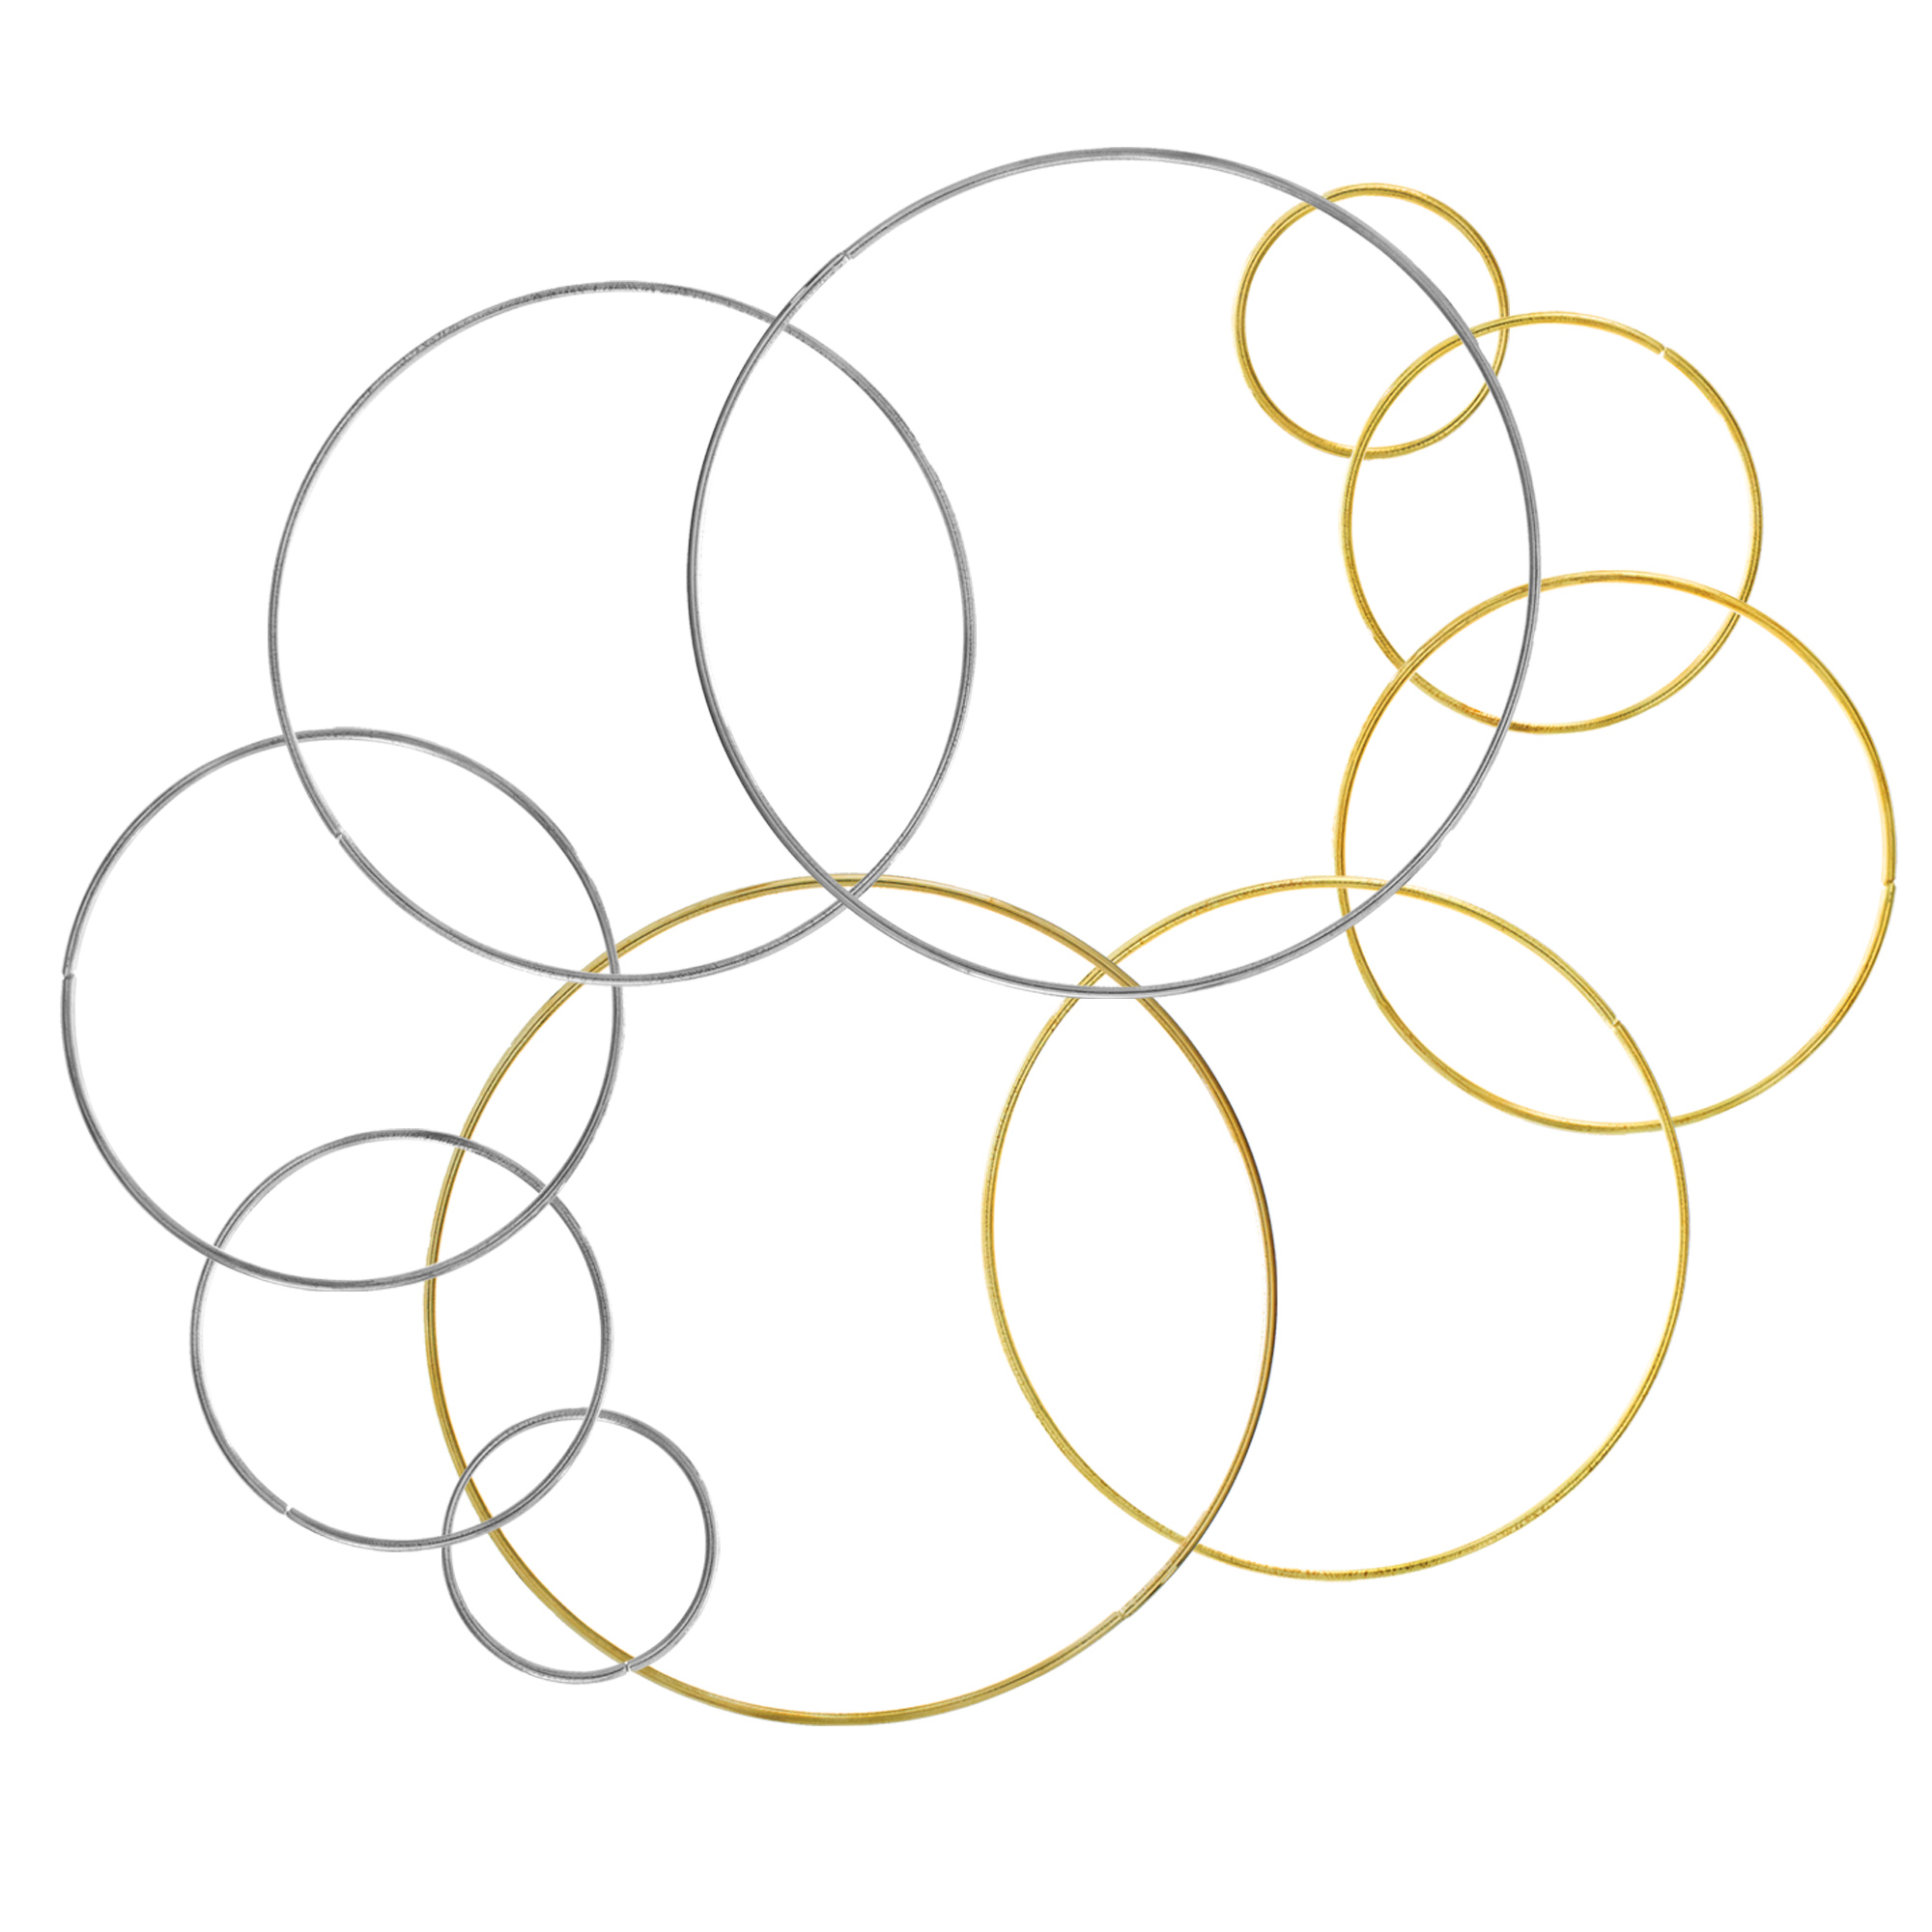 Paracord Planet - Bulk of 11 Assorted Size (2 Inch, 3 Inch, 4 Inch, 5 Inch, 6 Inch) Metal Hoops - Gold, Silver, and Iron - Dreamcatchers and Macrame